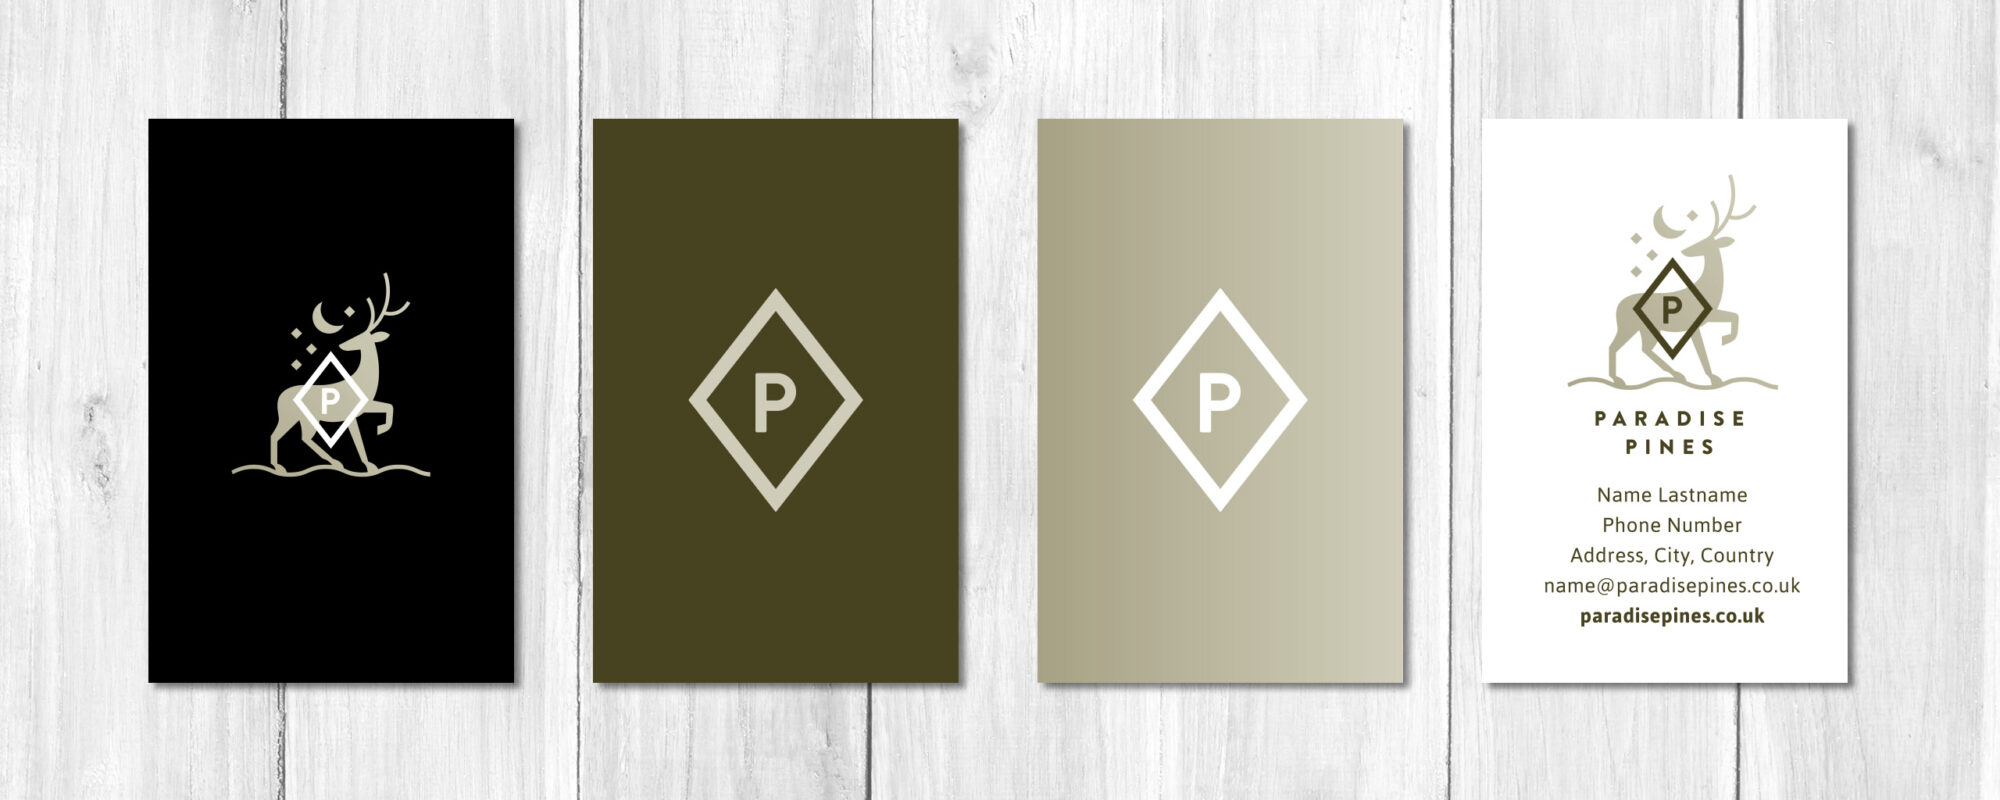 Paradise Pines Business Card Design